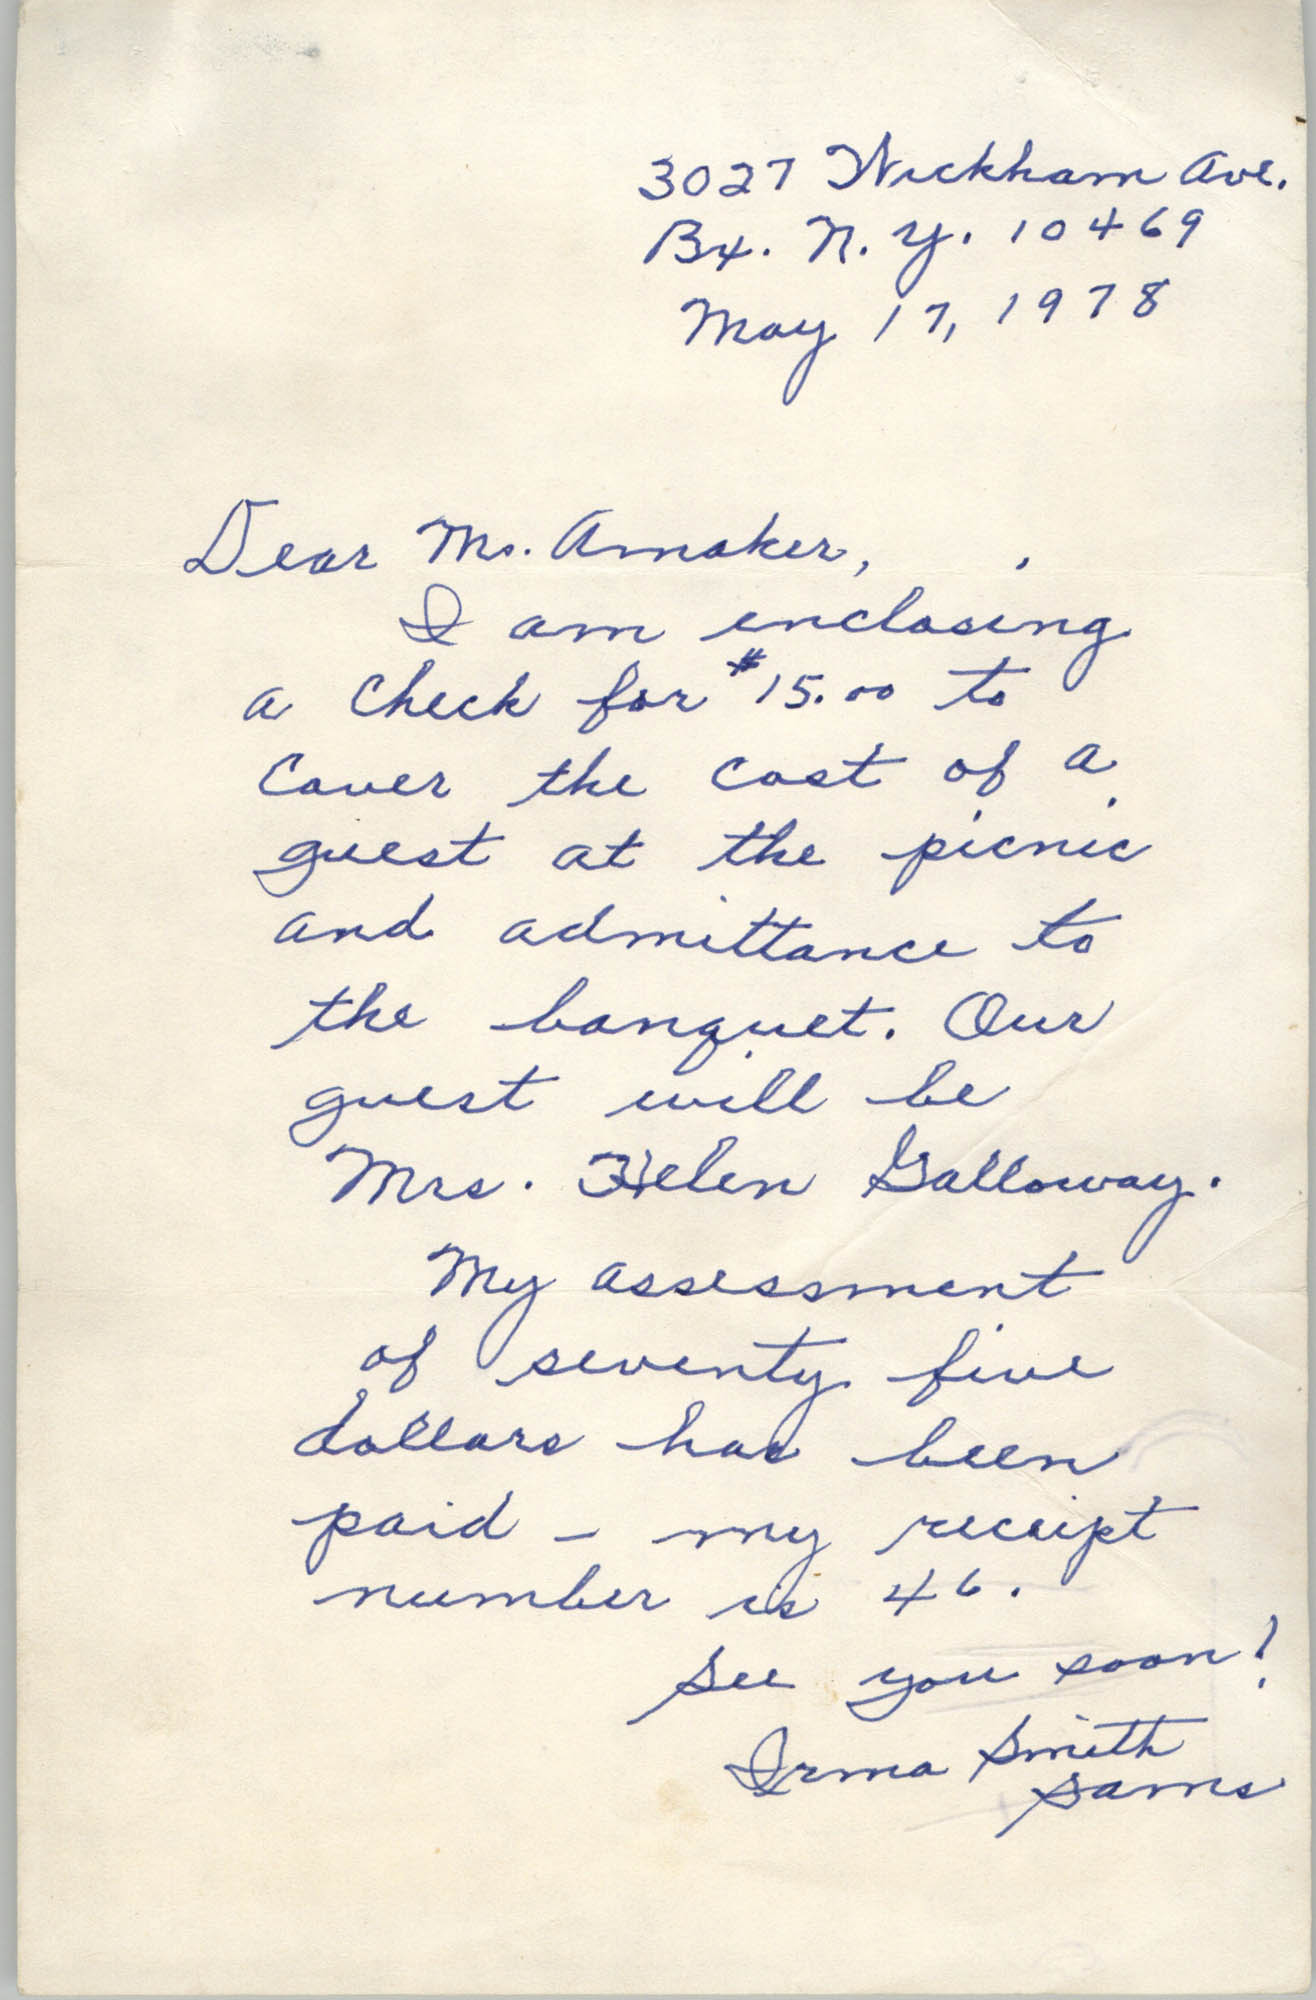 Letter from Irma Sams to Viola Amaker, May 17, 1978